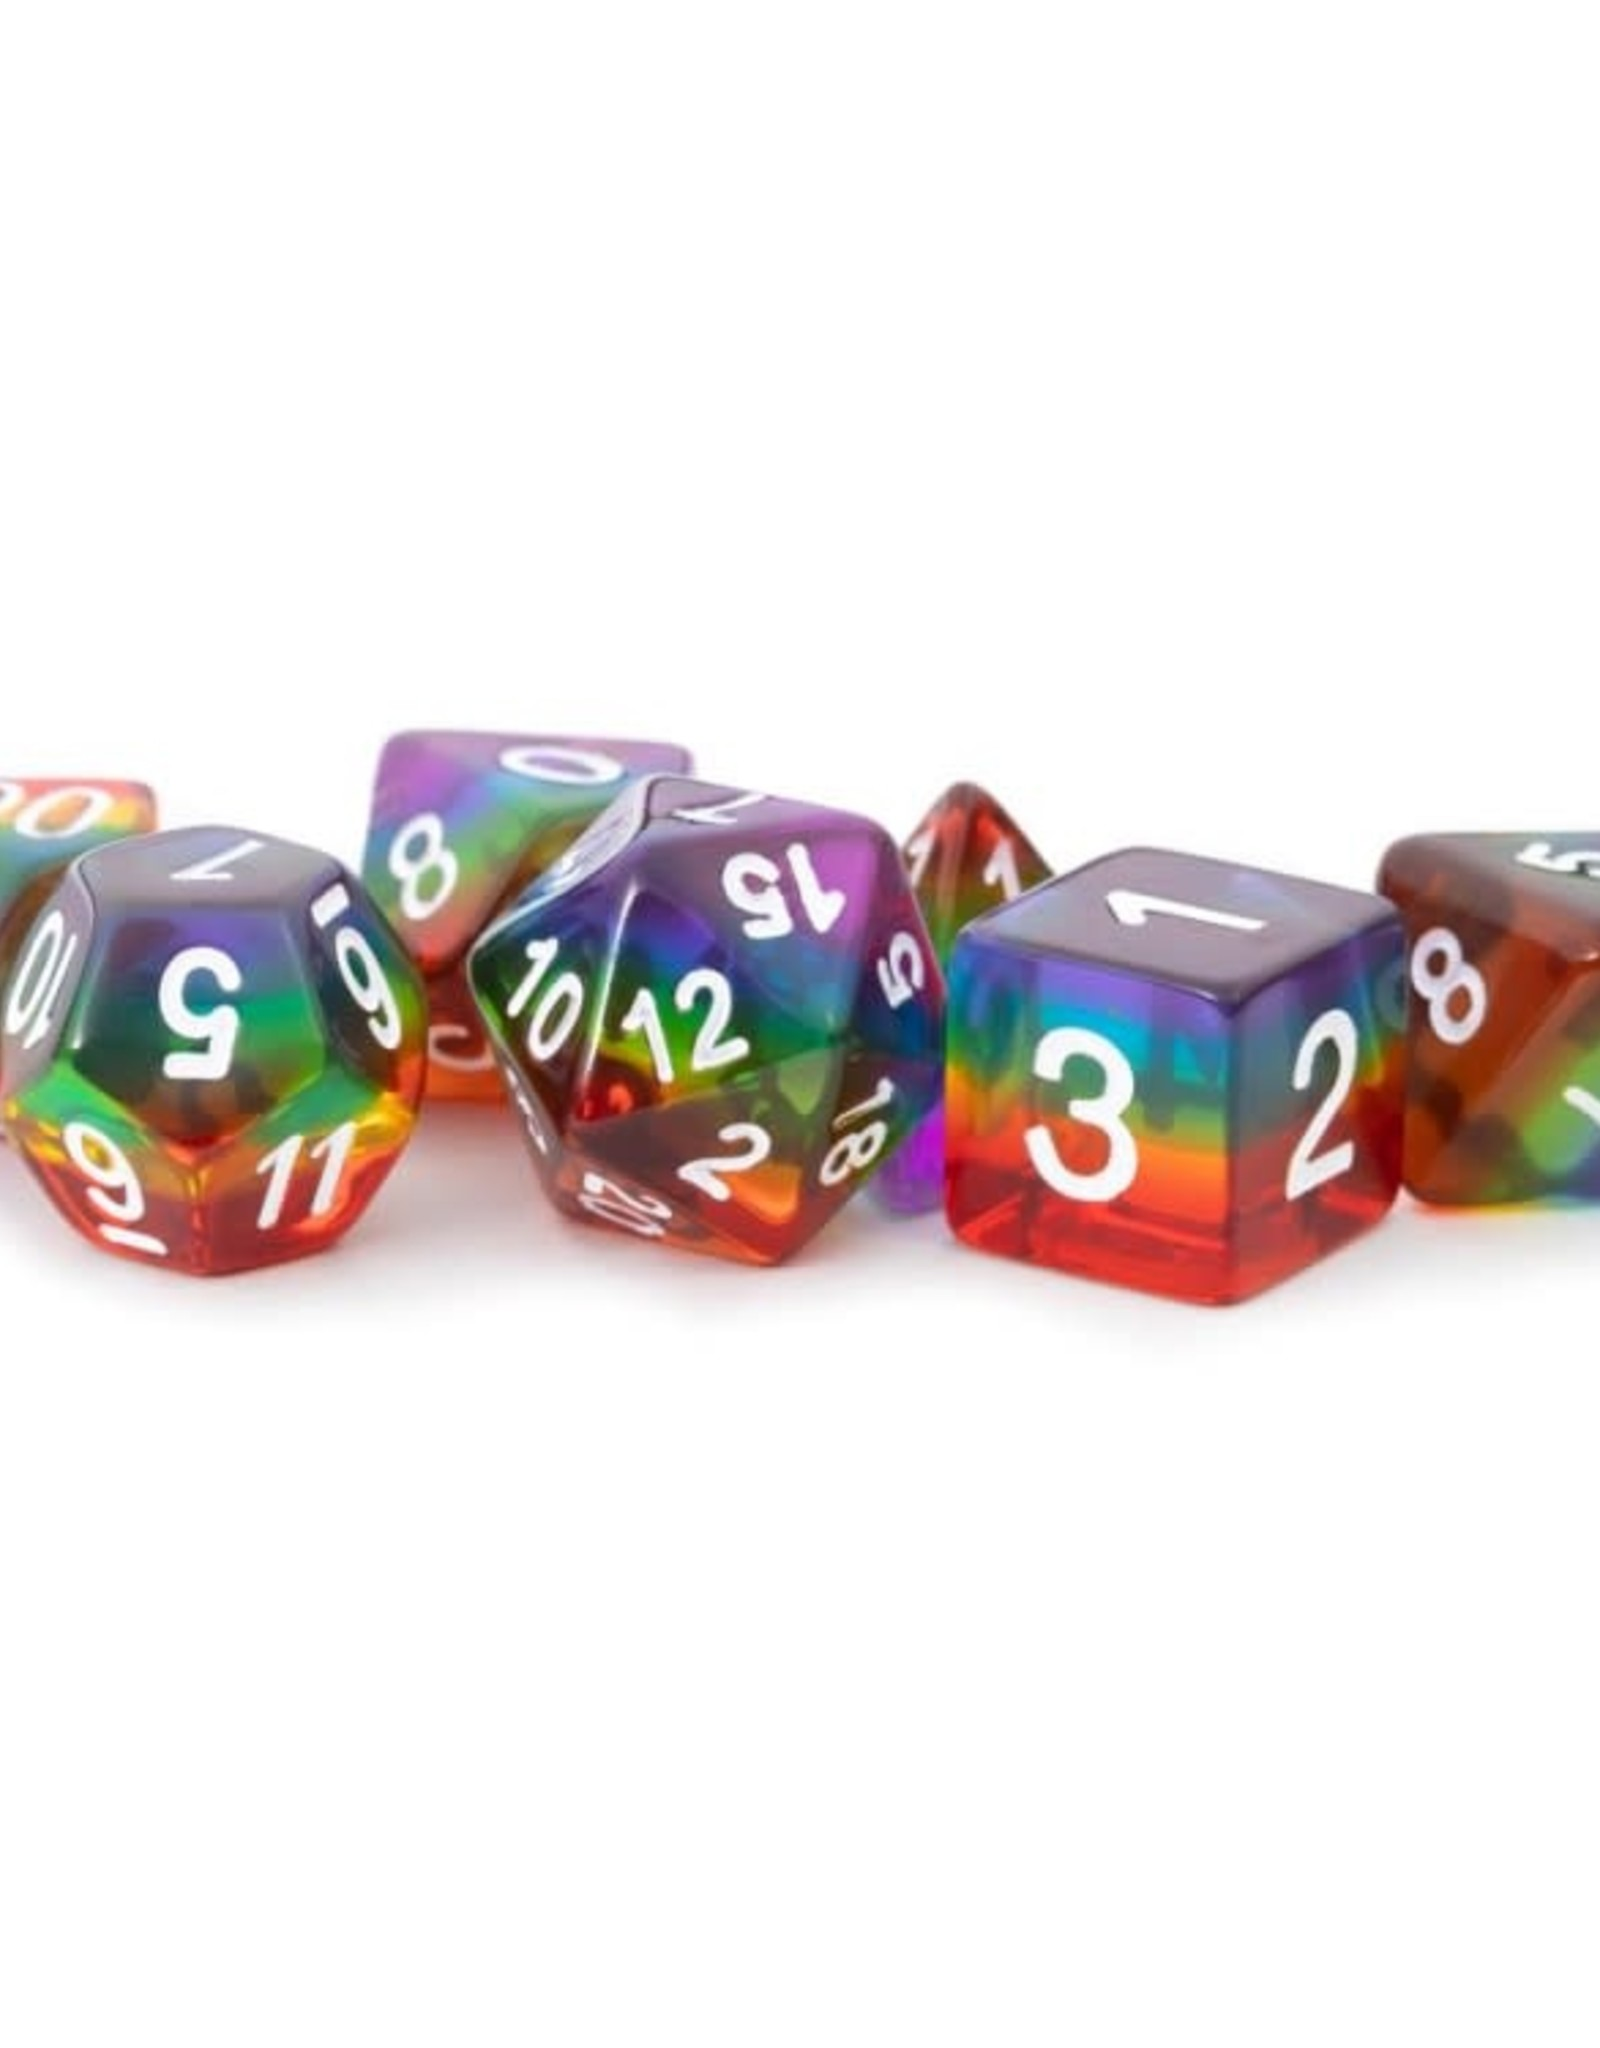 metallic dice games 7-Set: TR RBWwh